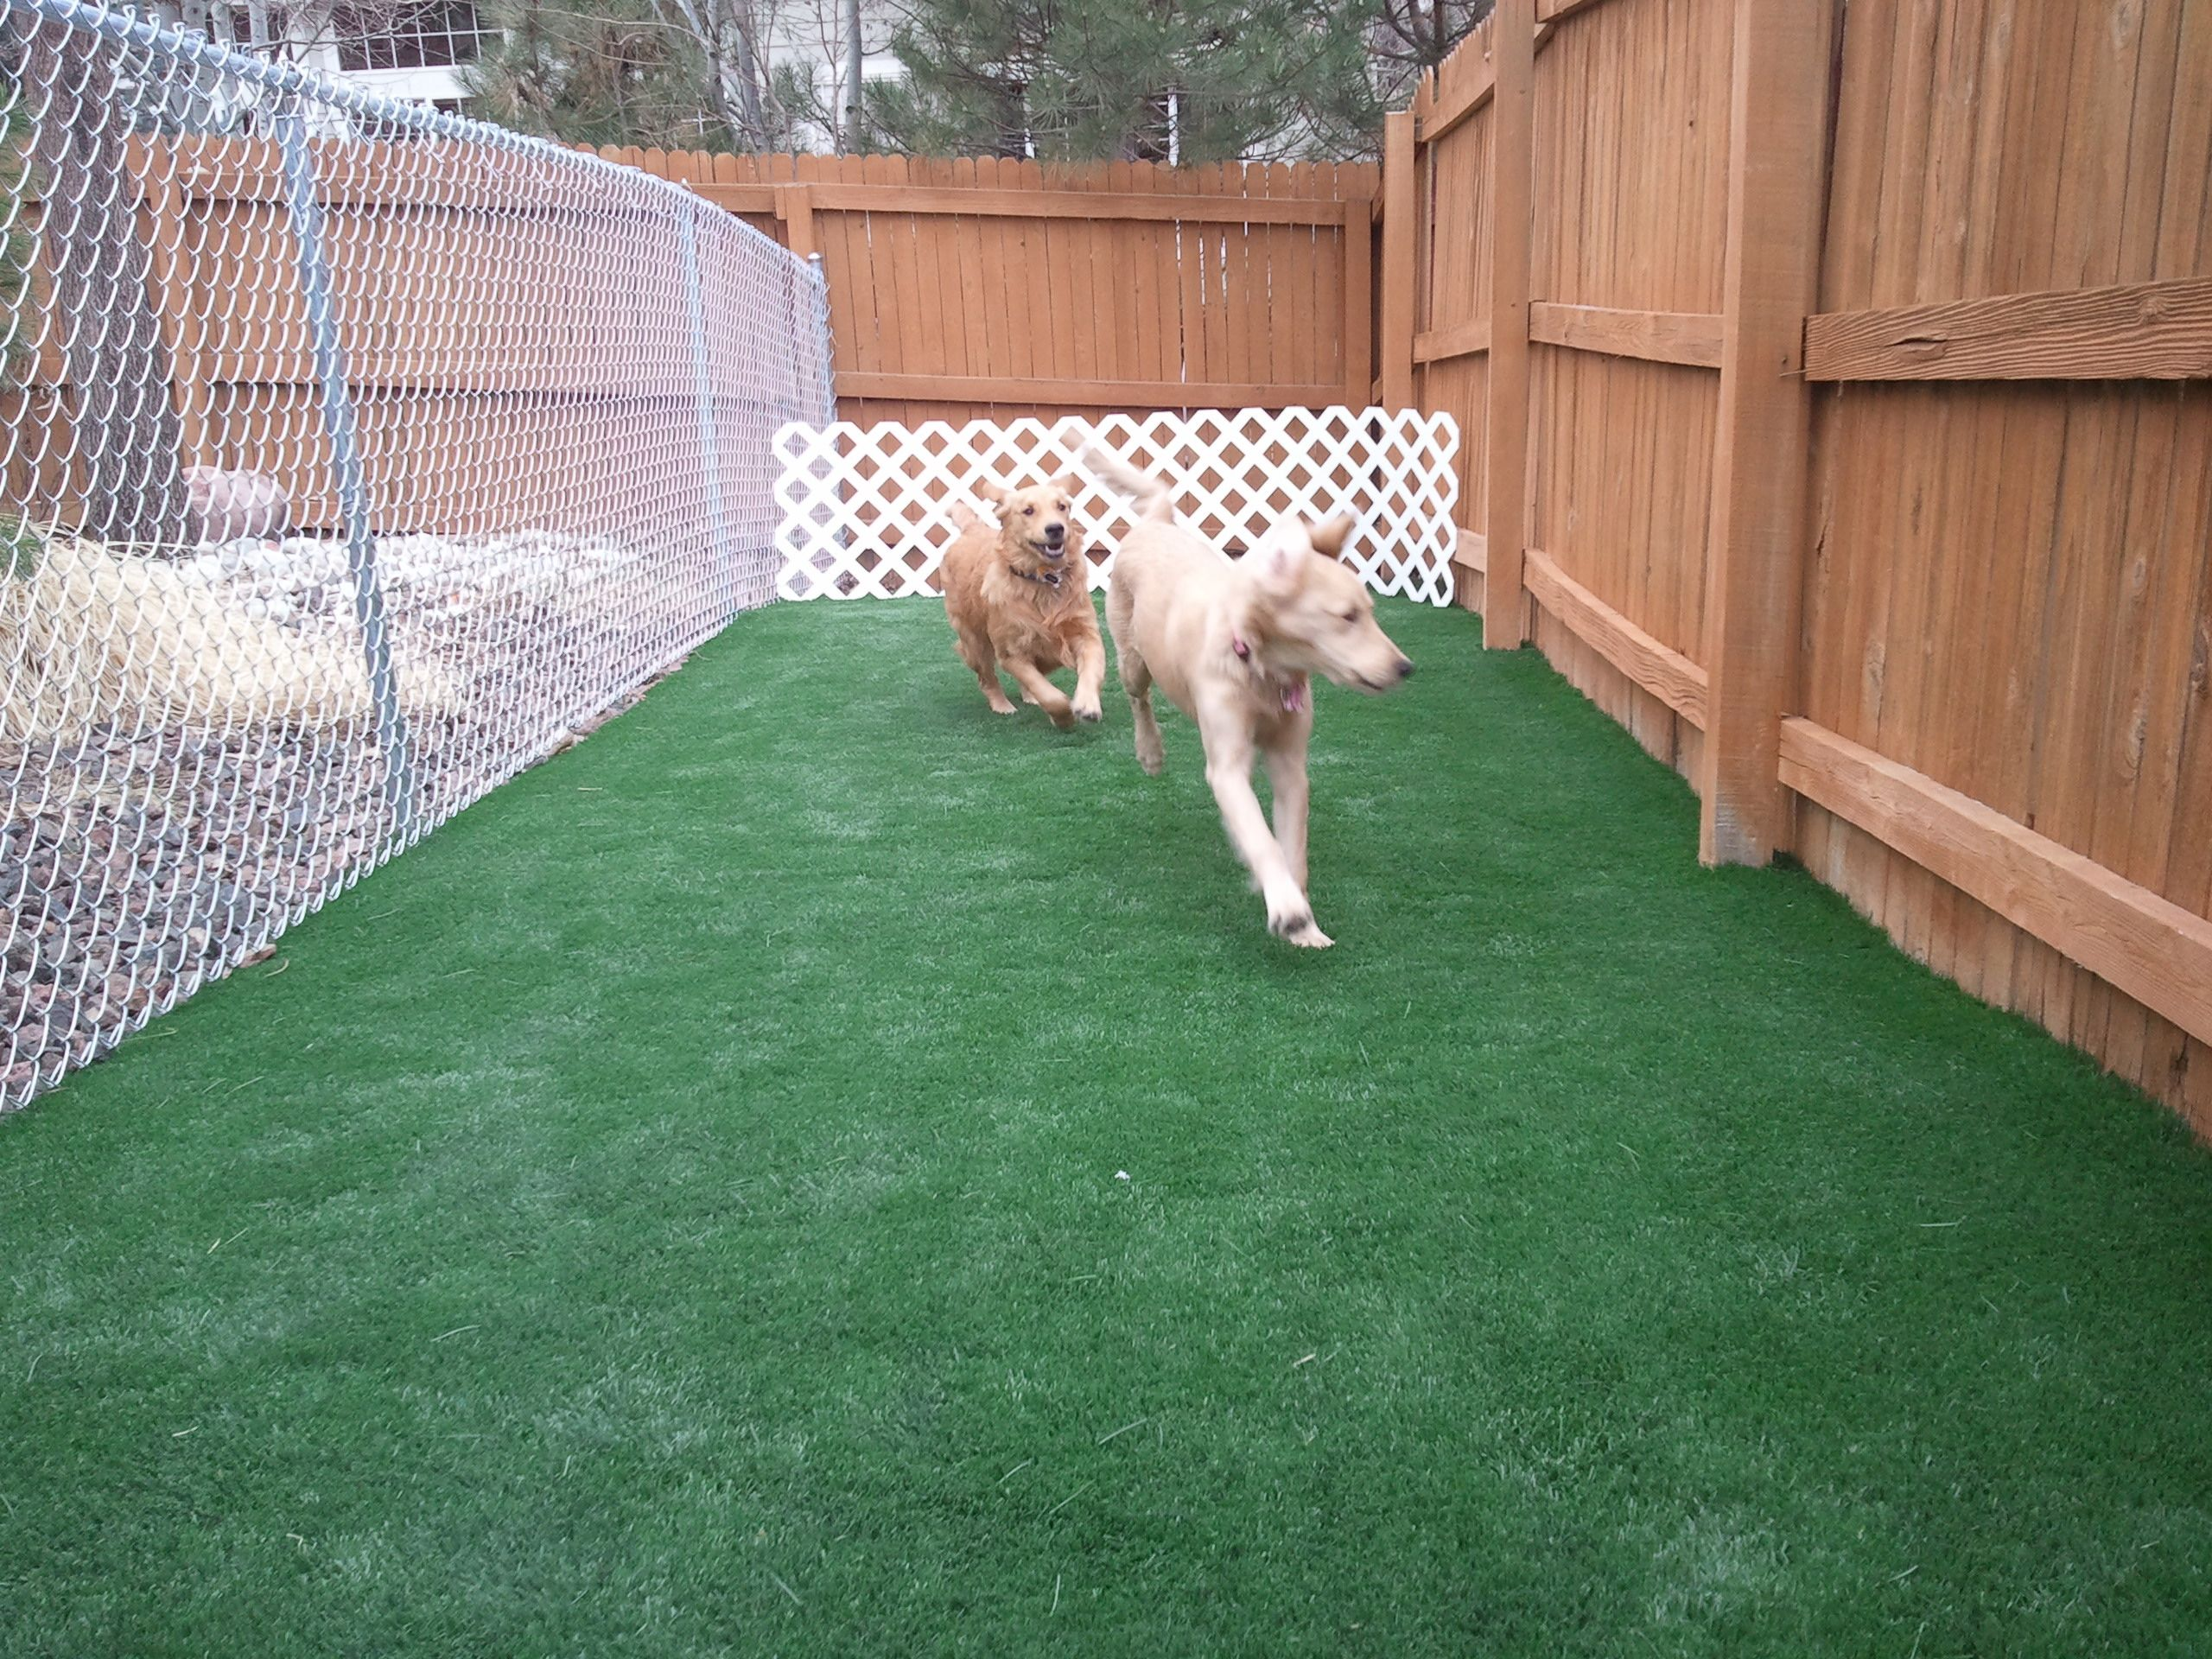 Dog Run Idea Fake Gr Costco Parion Off Yard And Make Shade Cover Rock Along Fence Line On Right